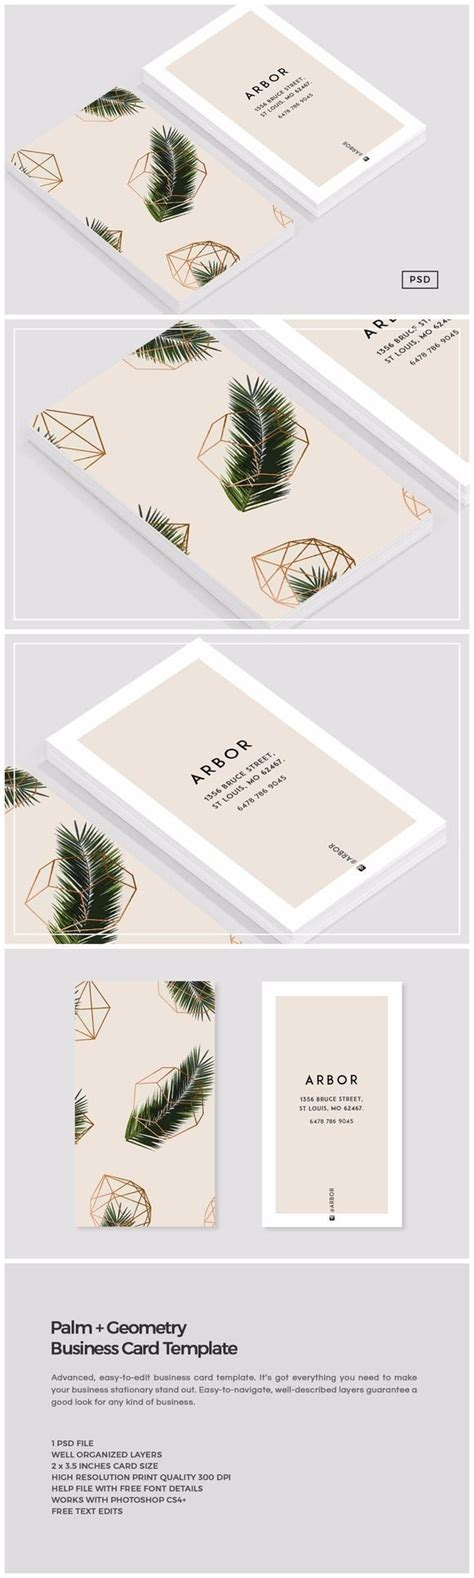 palm geometry business card  images card design